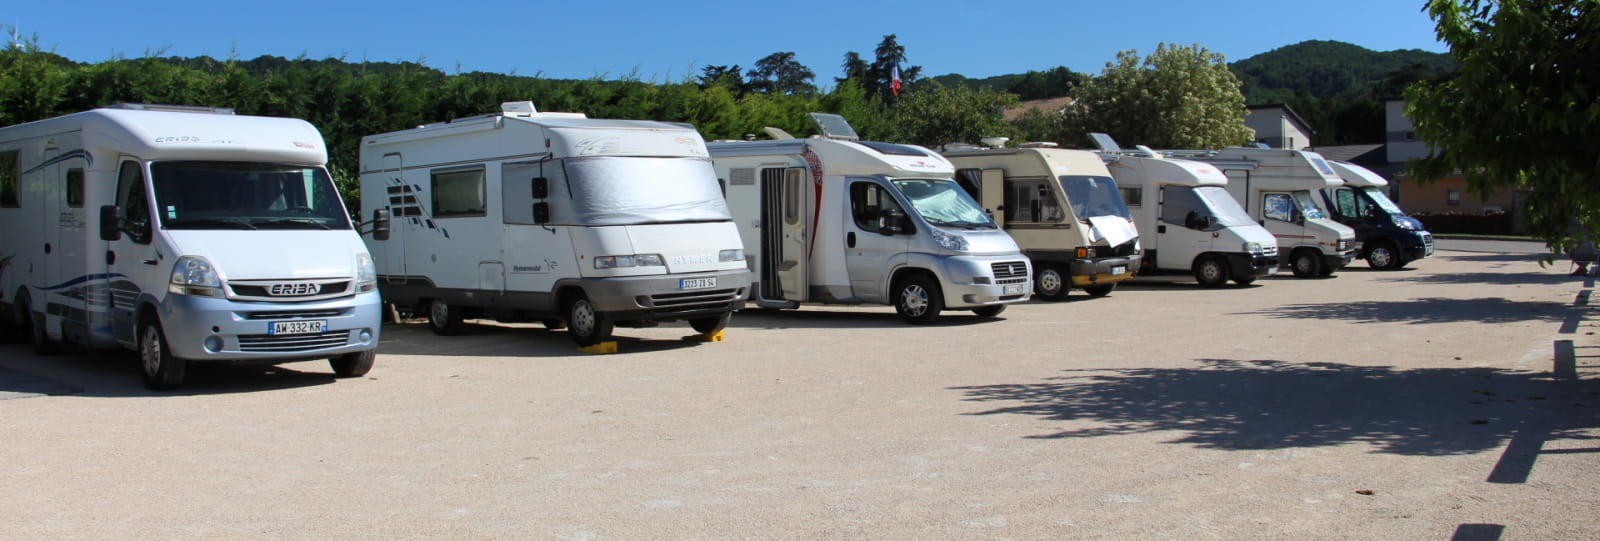 Aire Camping-Cars de Beausemblant